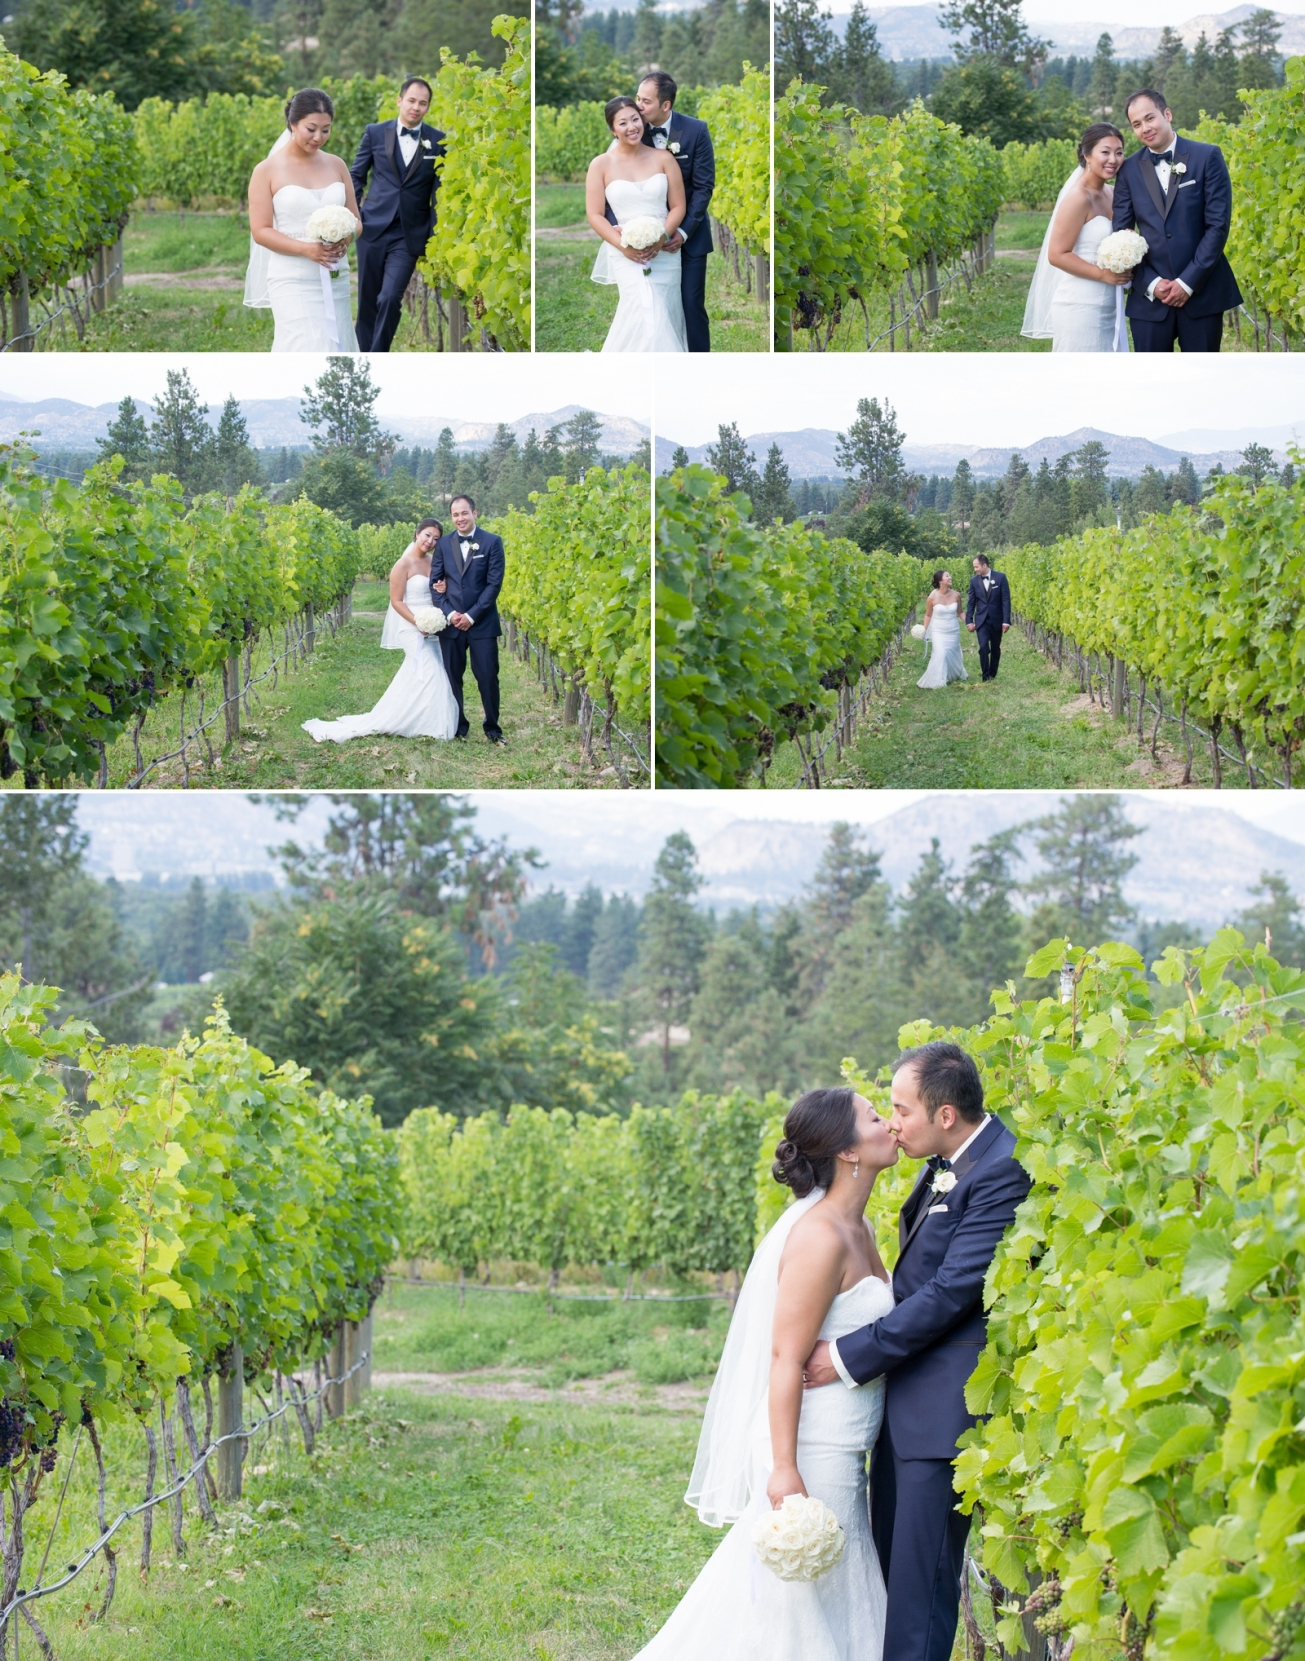 Tantalus Winery Wedding - Kelowna Okanagan - Suzanne le Stage 15